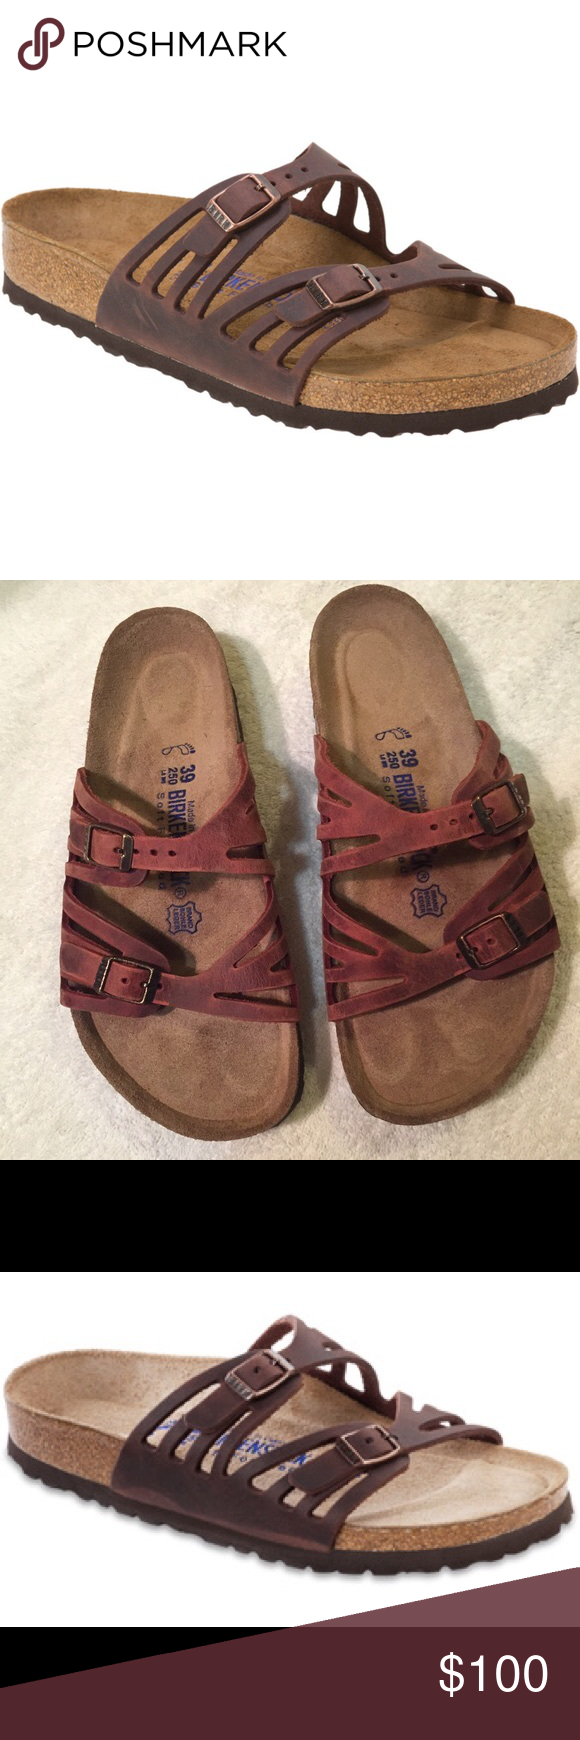 43bddcdec317556d8f8ebc5a55bcaf3d - How Do I Know What Size Birkenstocks To Get